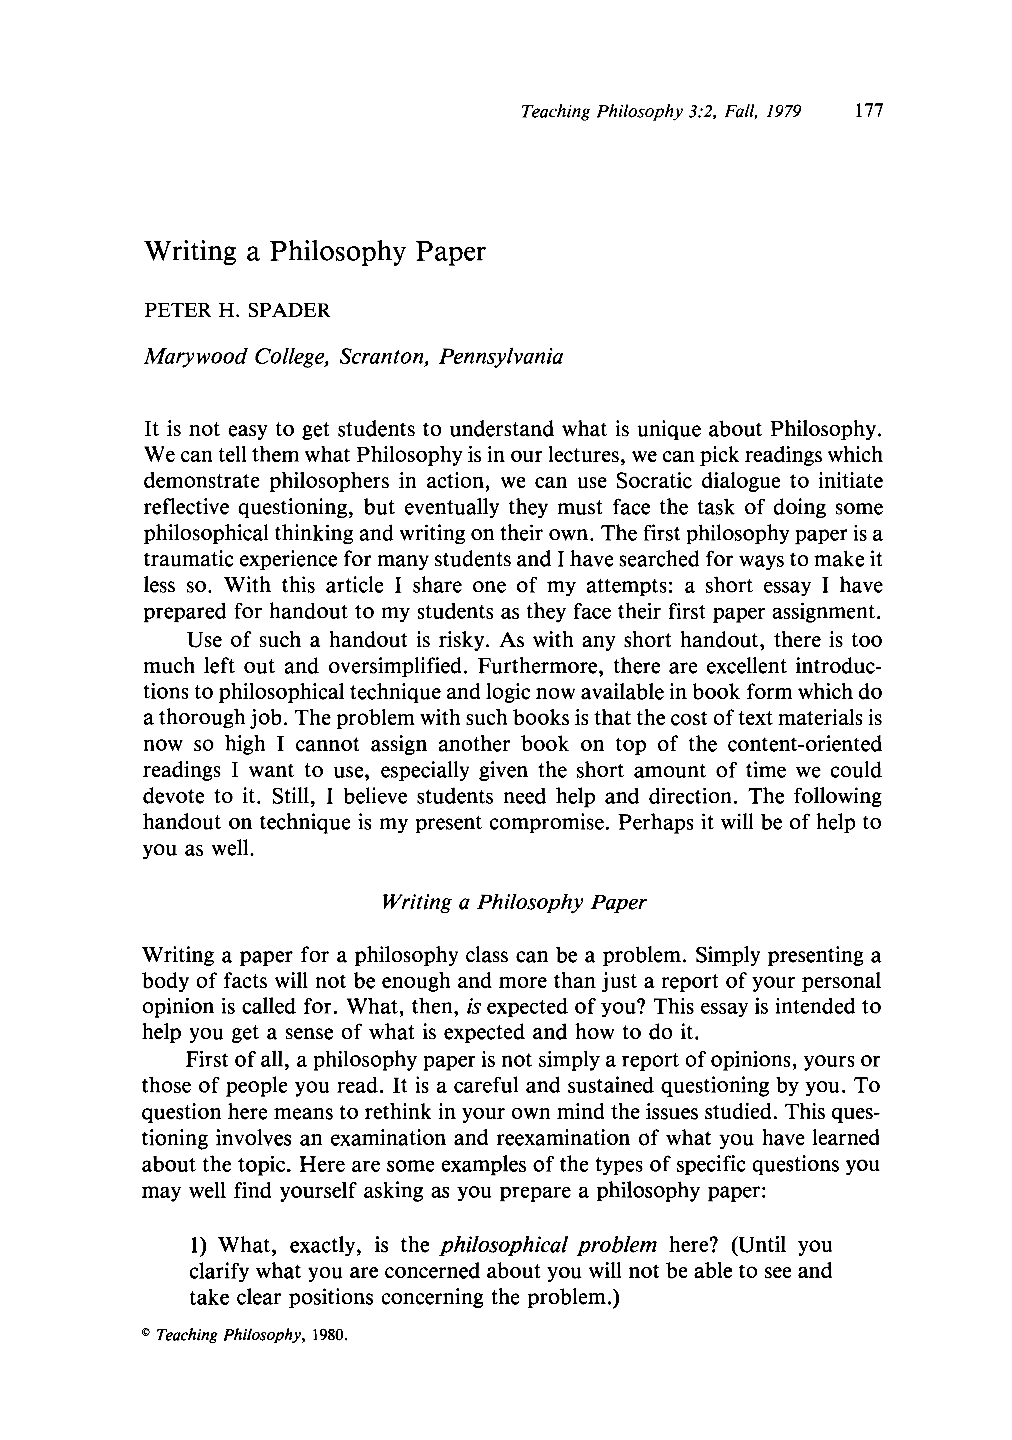 buy essay paper best place to buy essay paper purcell yachts buy philosophy paper writing service buy resume for writing buy a custom philosophy essay college term papers